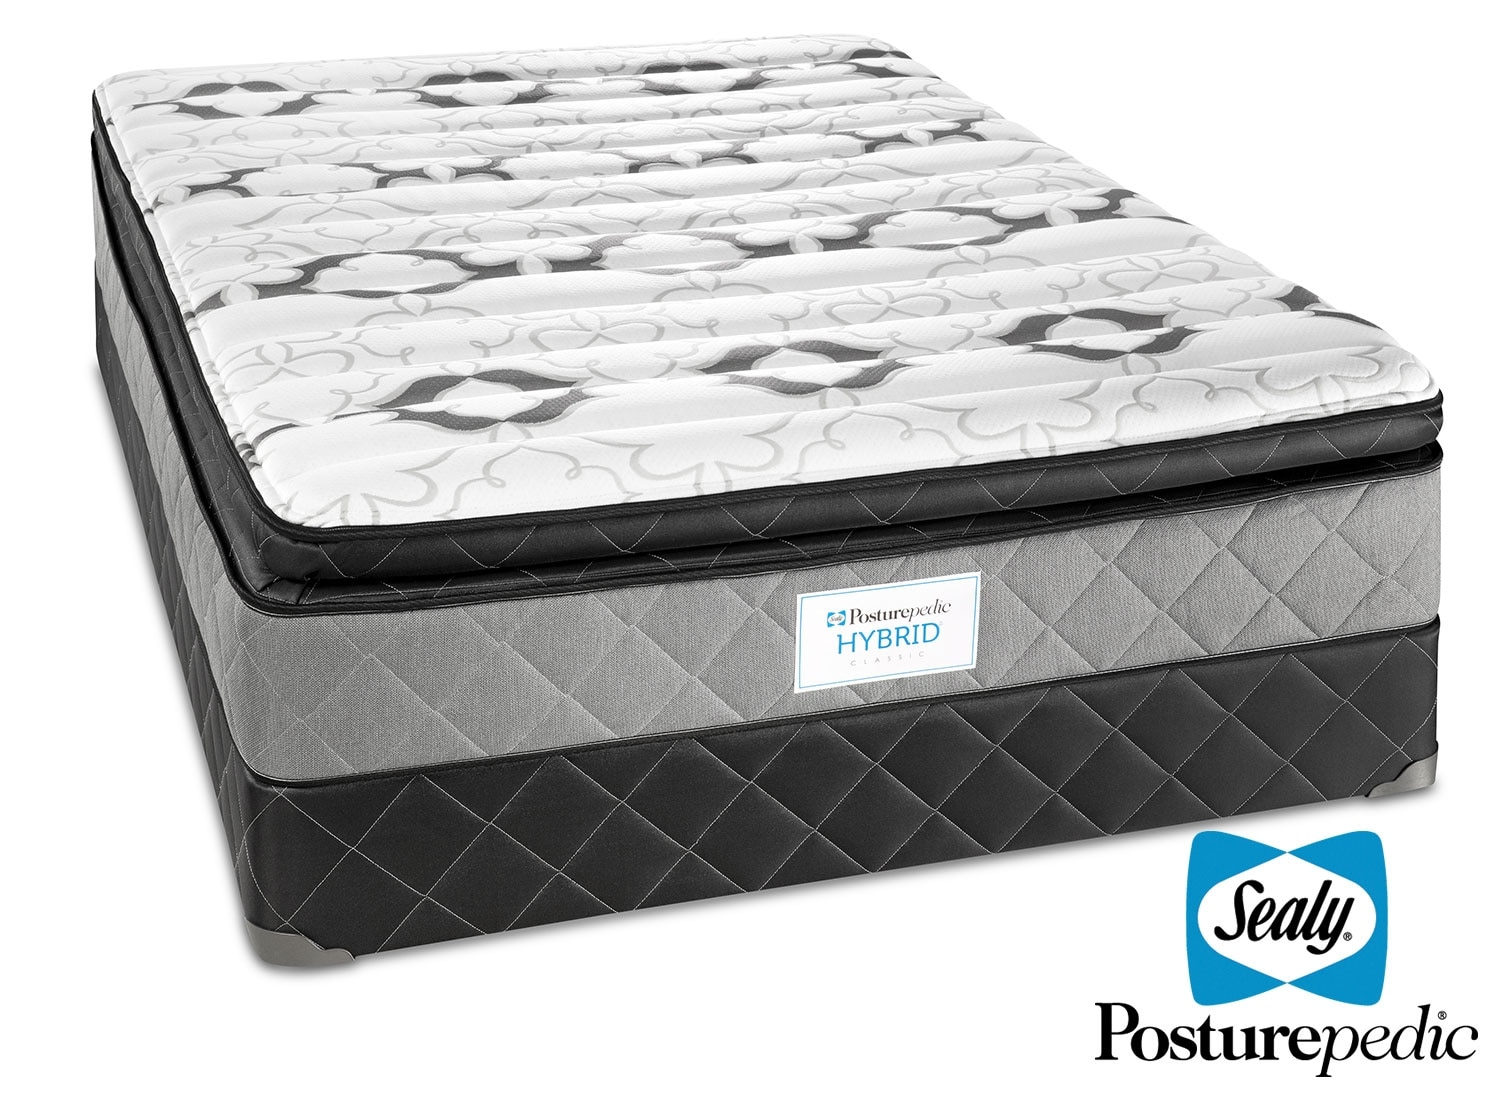 [Sealy Fable Firm Queen Mattress/Boxsrping Set]